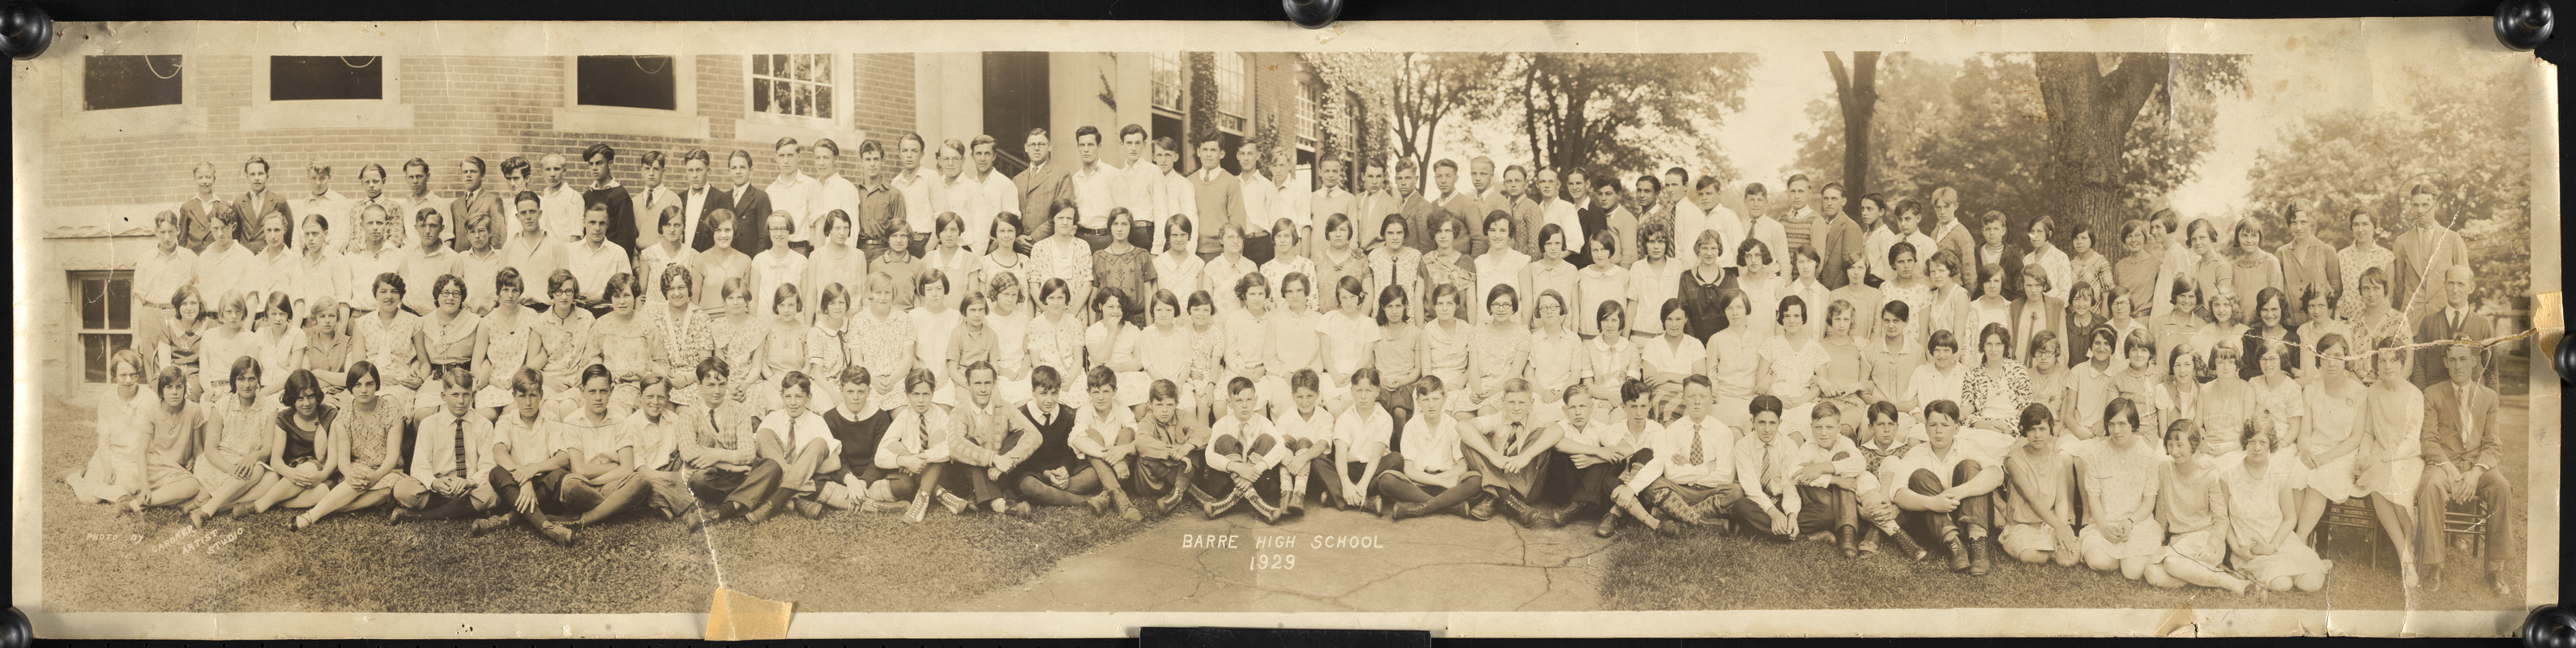 Barre High School 1929